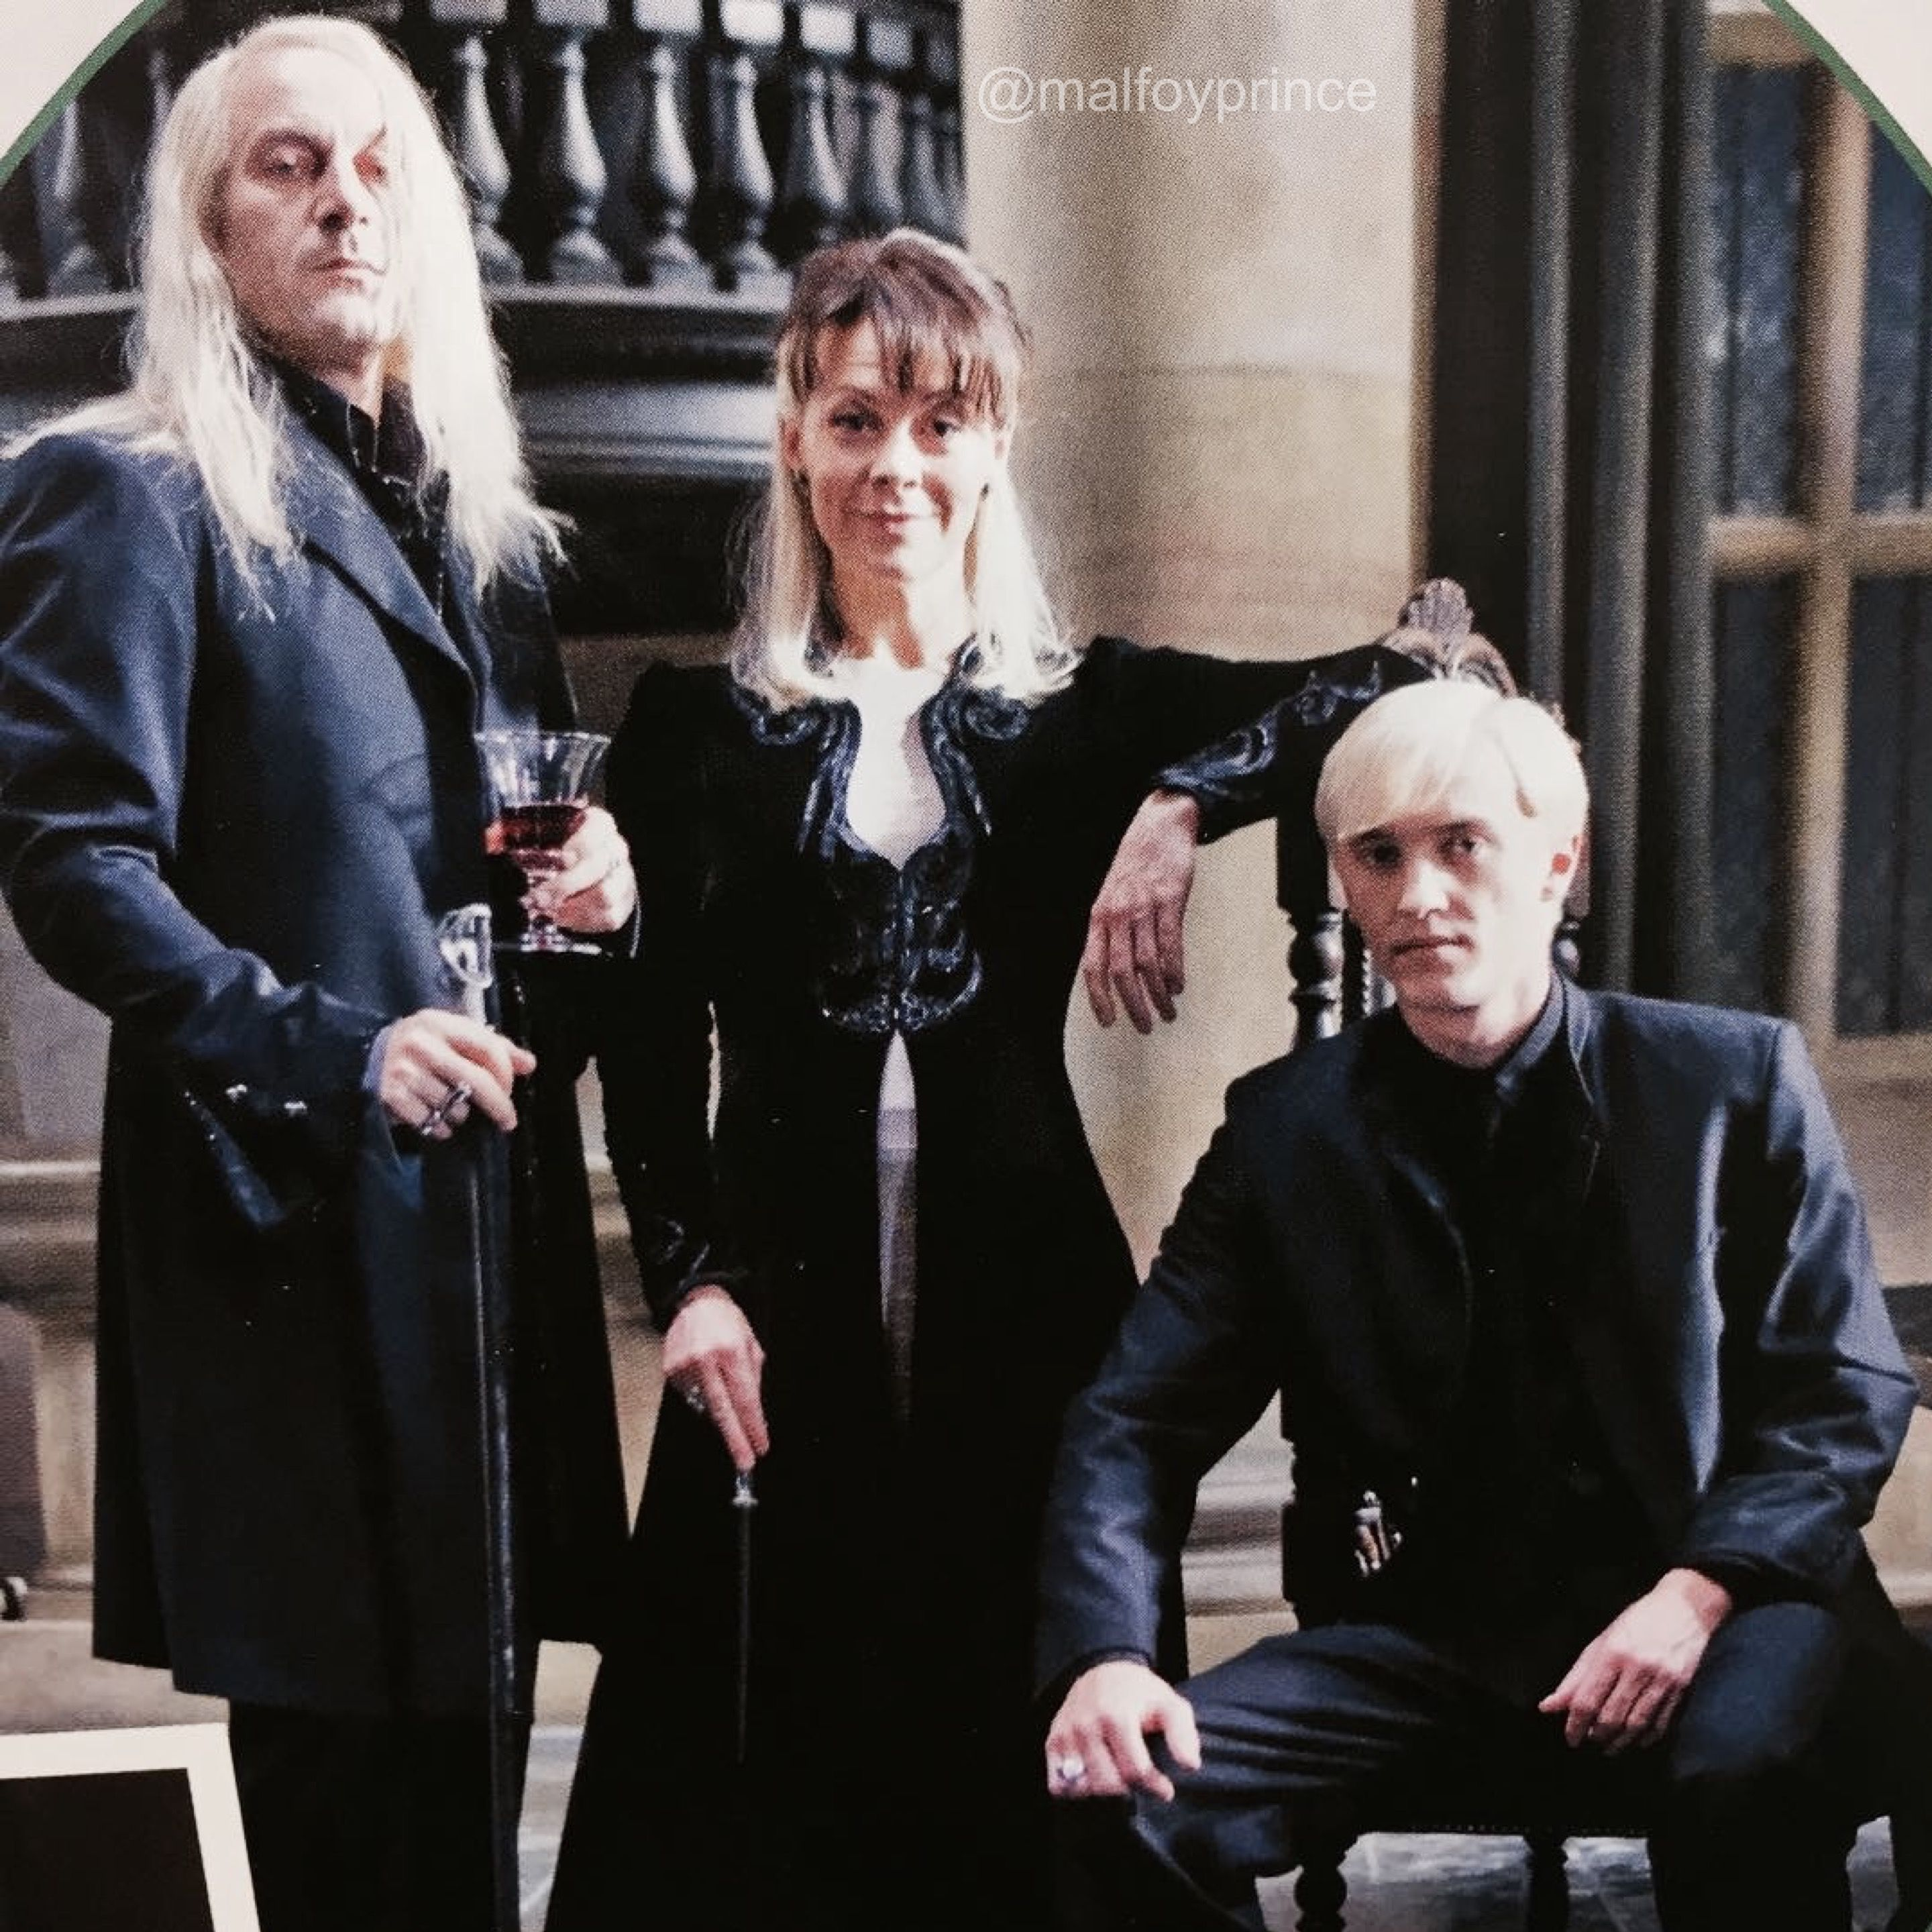 My favorite malfoy family ❤️ #iammarried